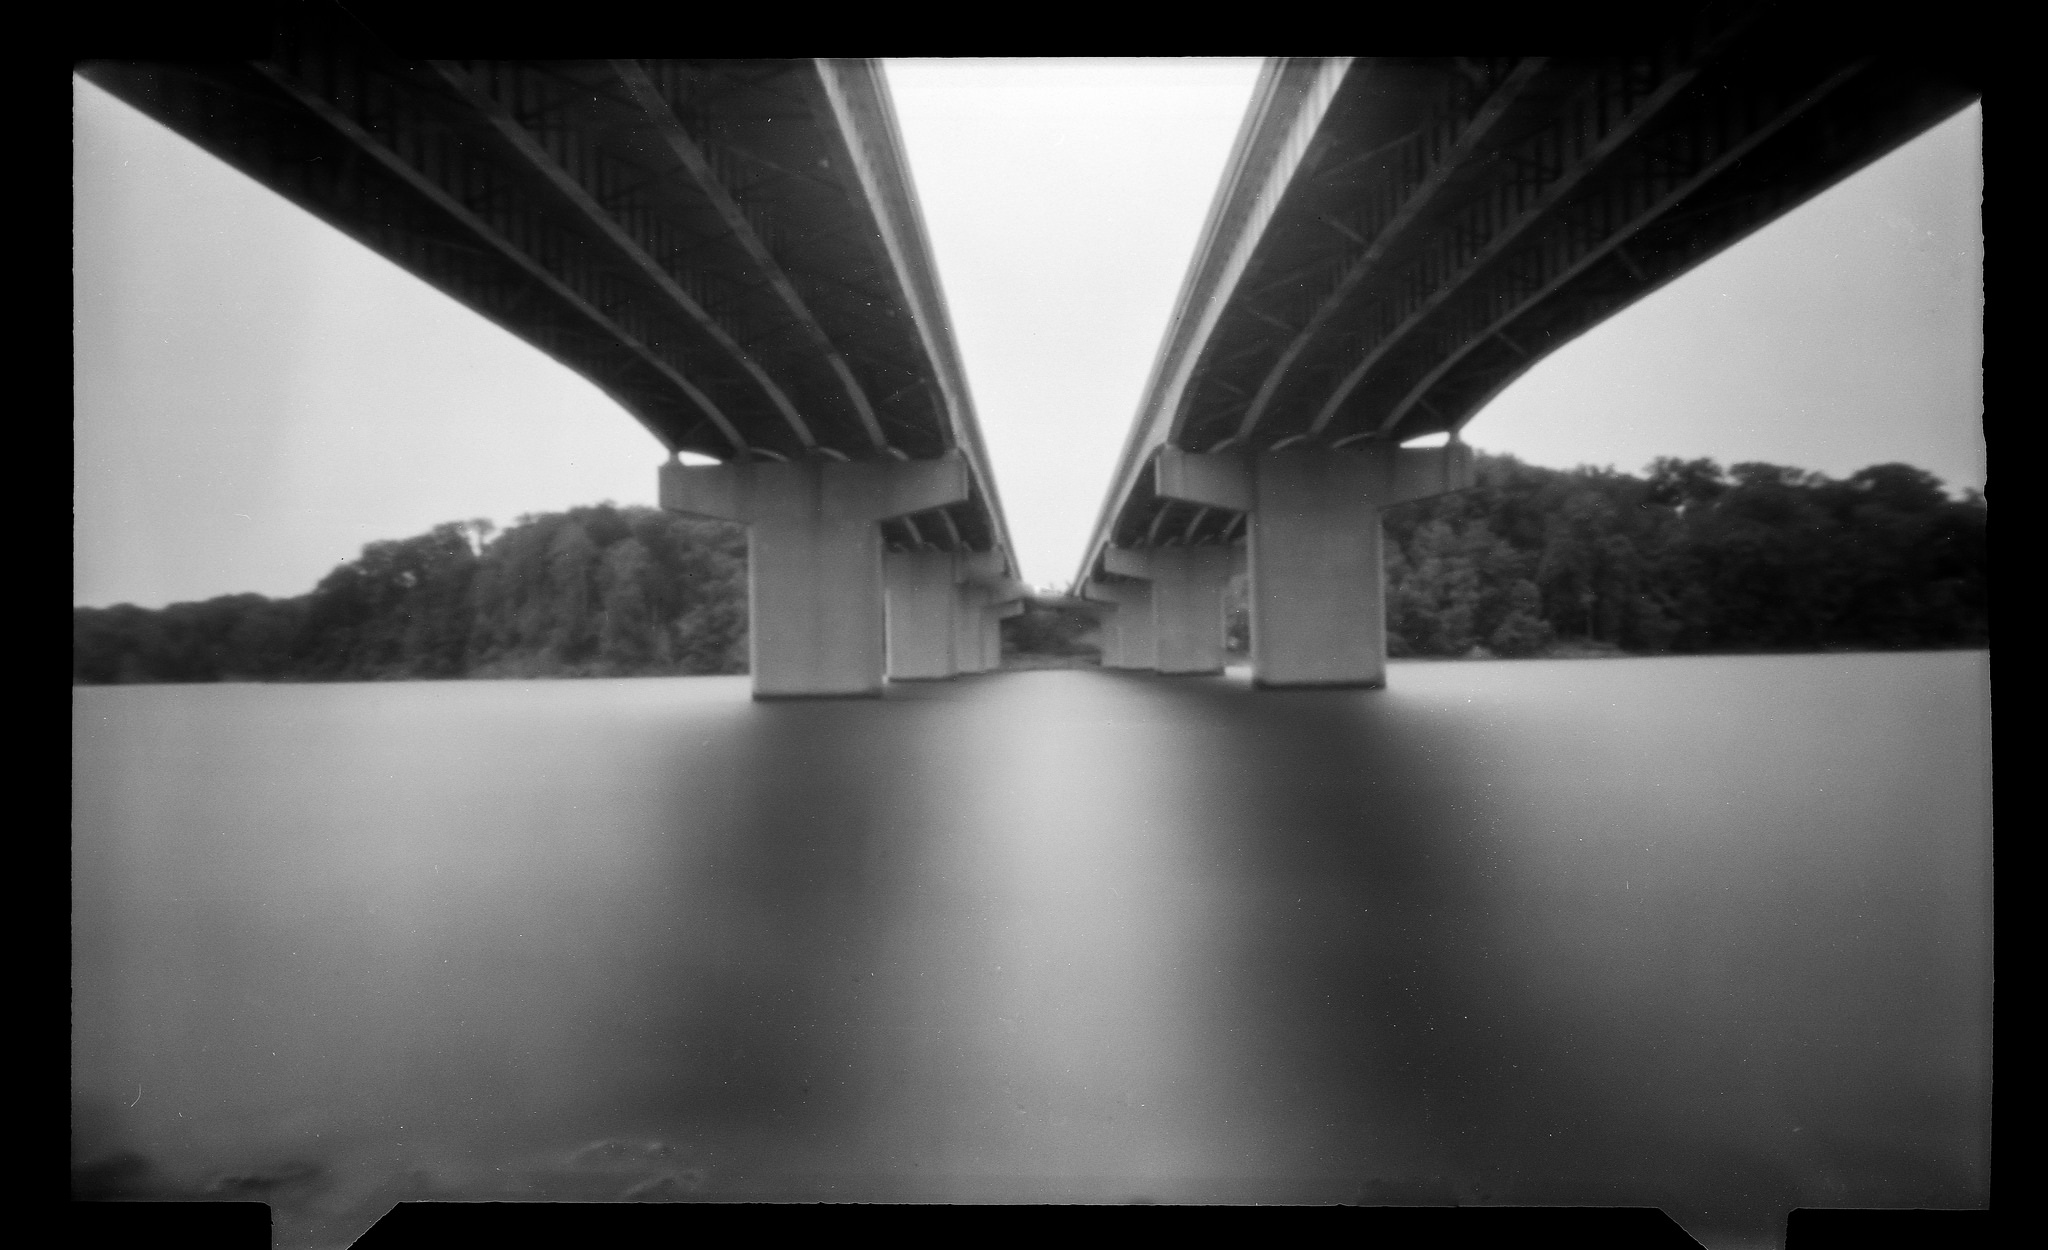 SR73 - 30 minute exposure in the pouring rain and torrential wind with a pinhole film camera. Basically a wooden box with a small hole and film inside.